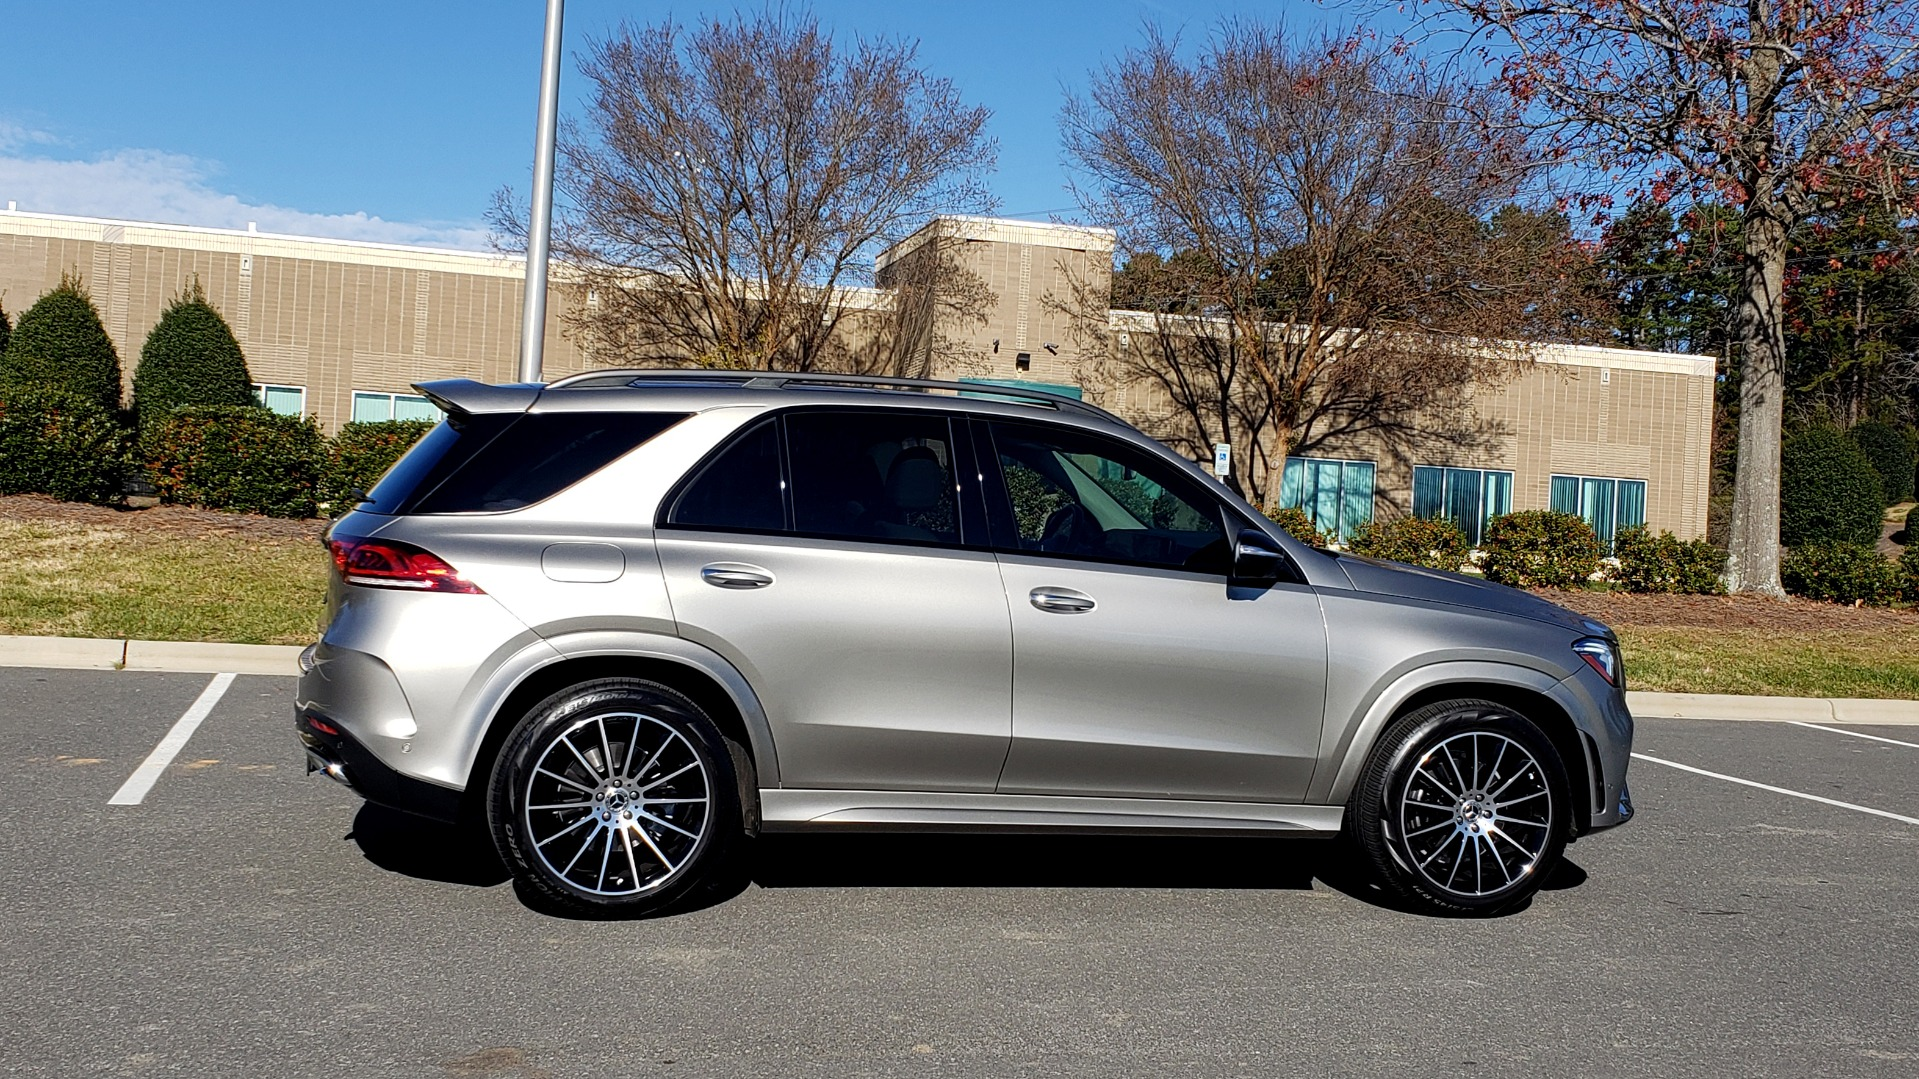 Used 2020 Mercedes-Benz GLE 350 PREMIUM / NAV / PARK ASST / NIGHT PKG / AMG LINE EXT / REARVIEW for sale Sold at Formula Imports in Charlotte NC 28227 10